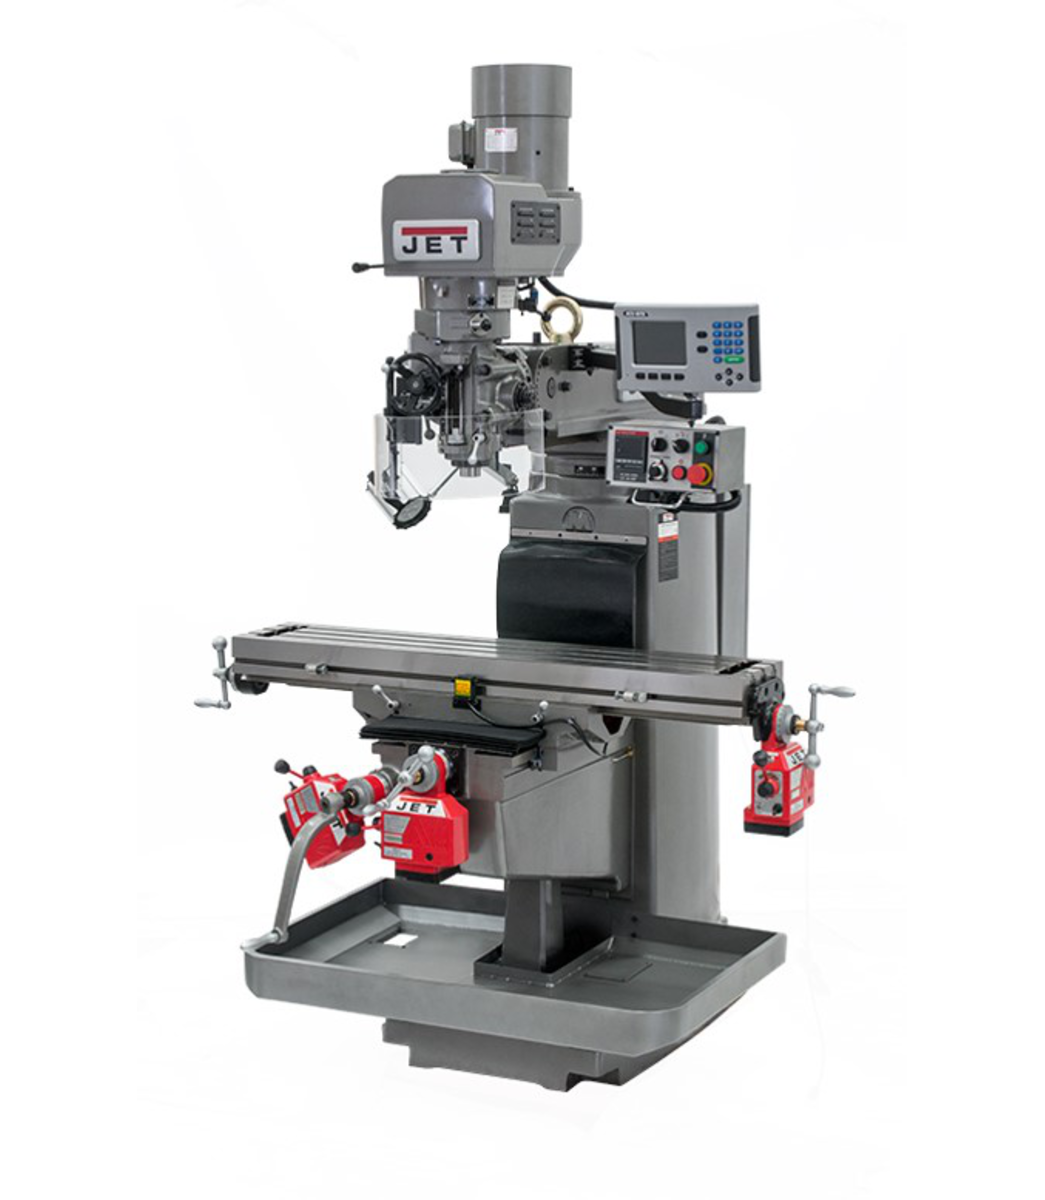 JTM-1050EVS2/230 Mill With Acu-Rite 203 DRO With X, Y and Z-Axis Powerfeeds and Air Powered Drawbar